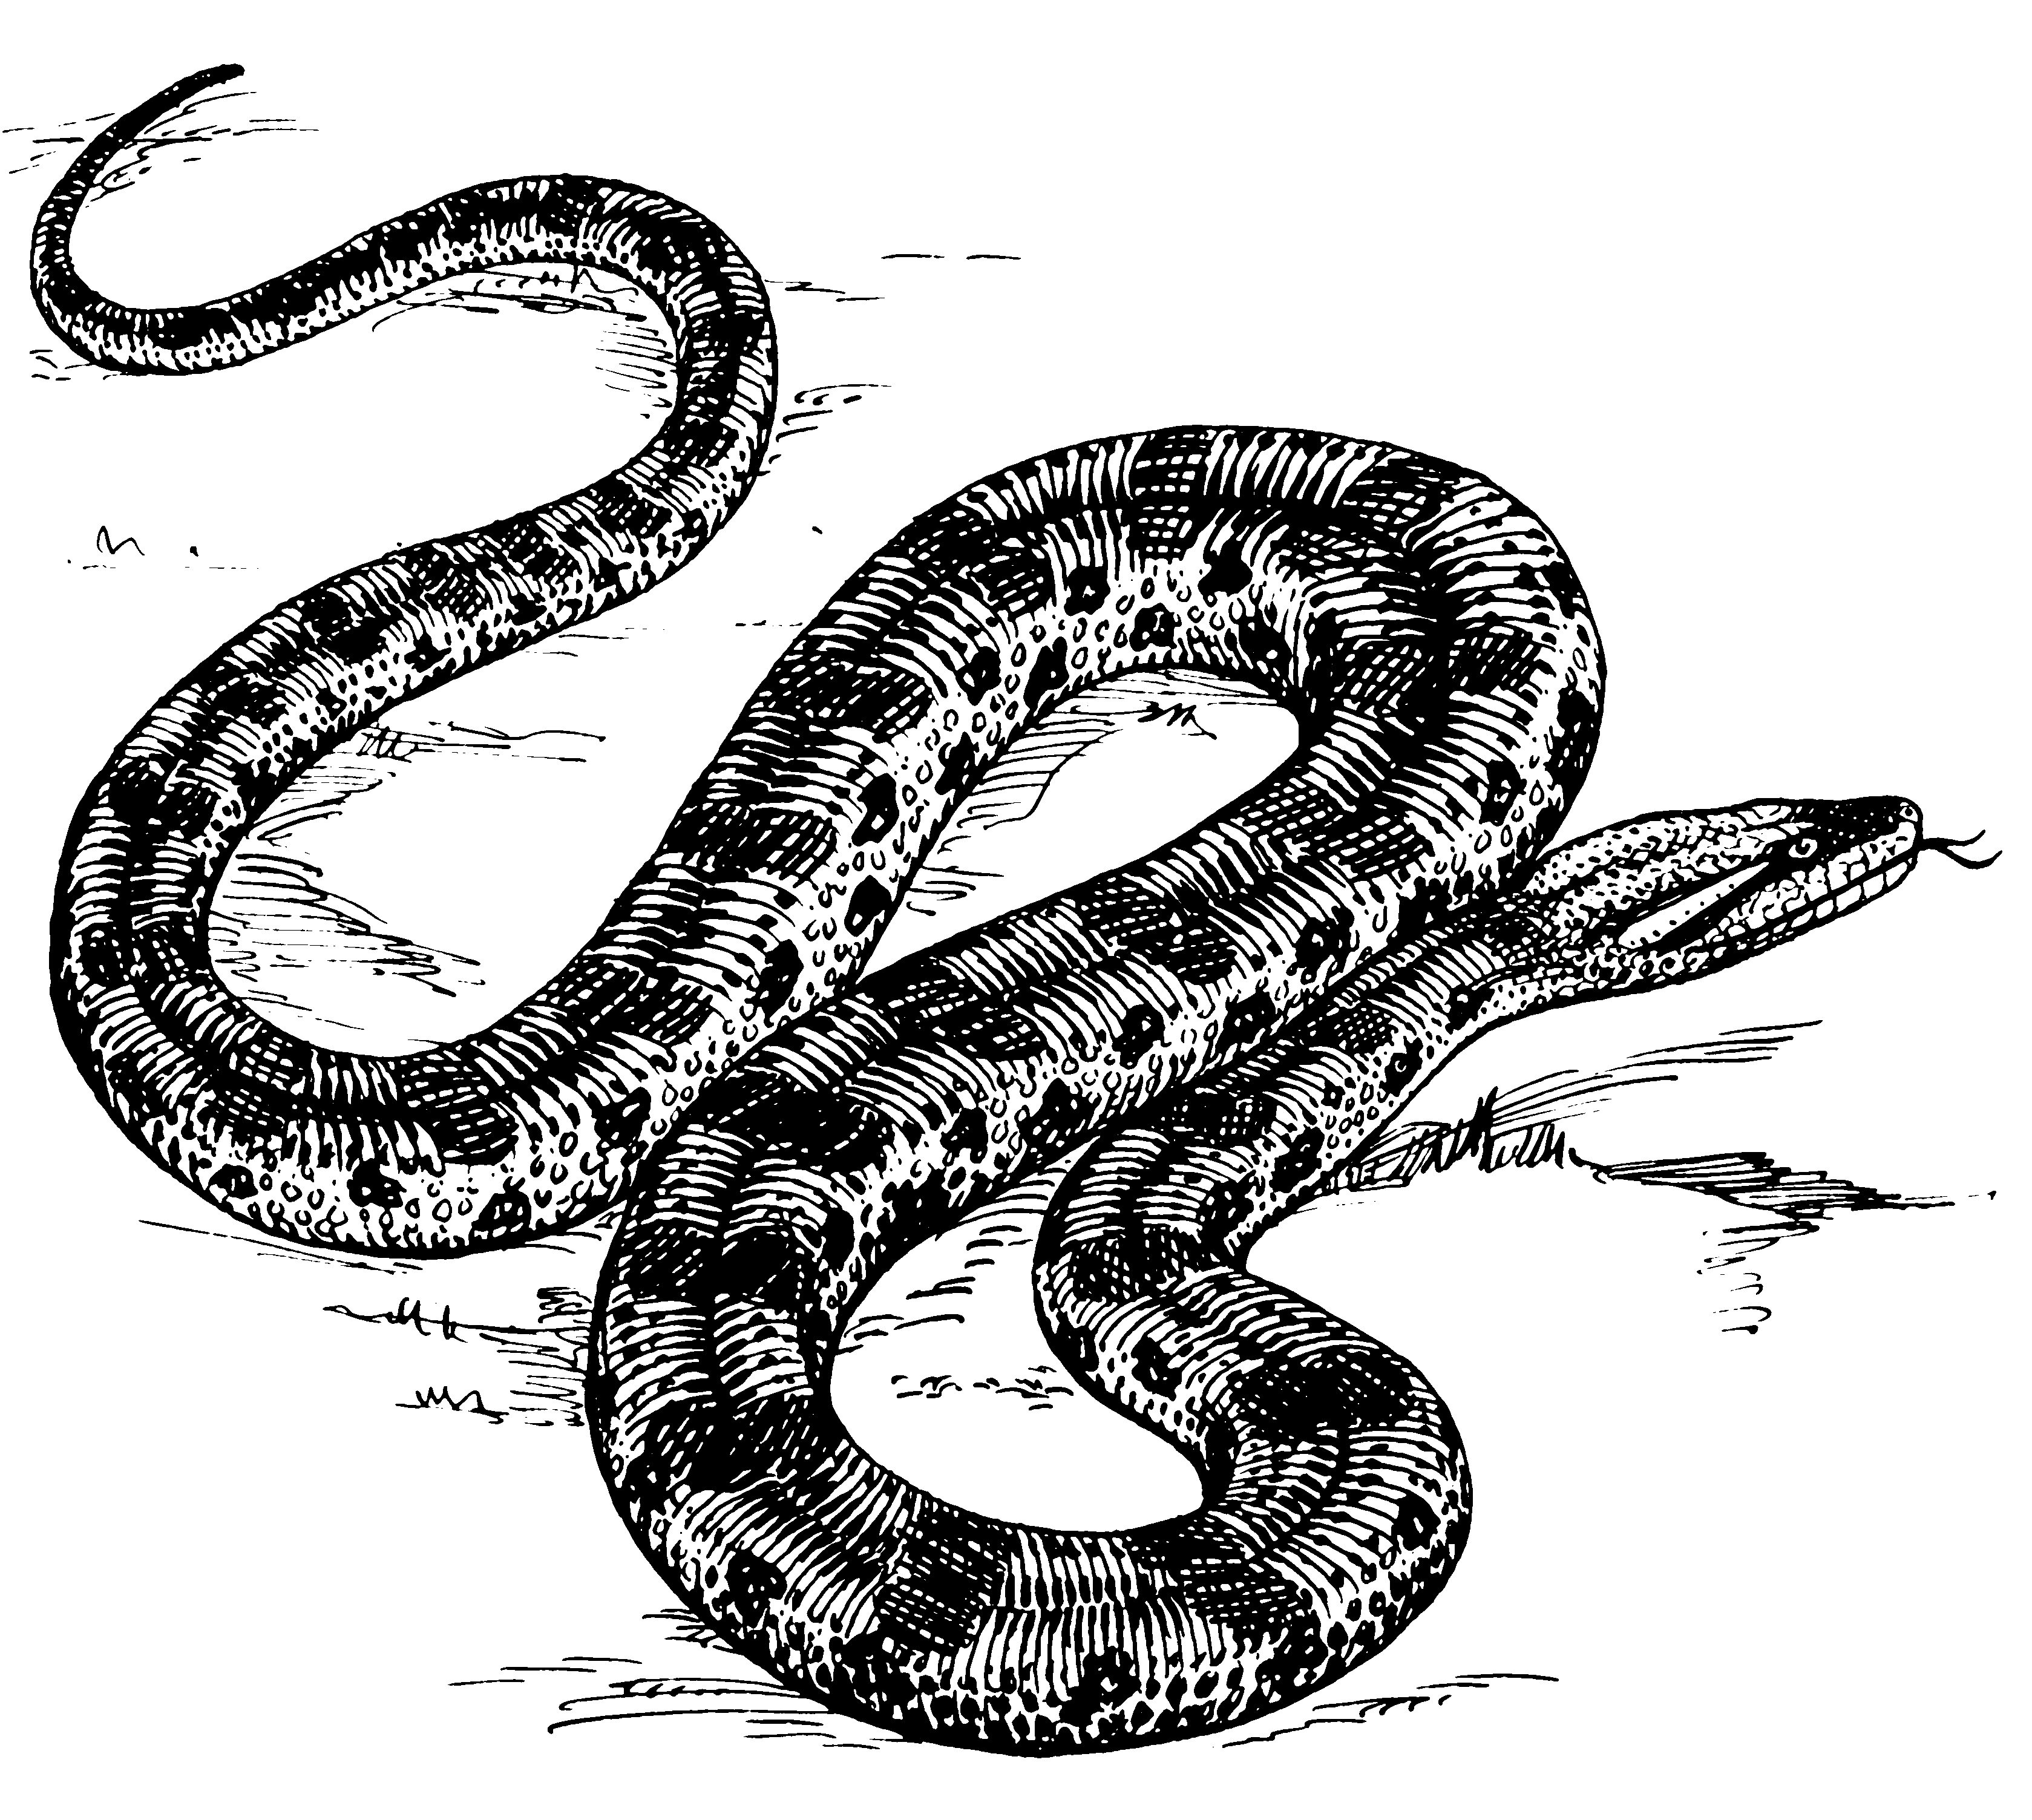 Drawing Lines With Python : File anaconda psf wikipedia